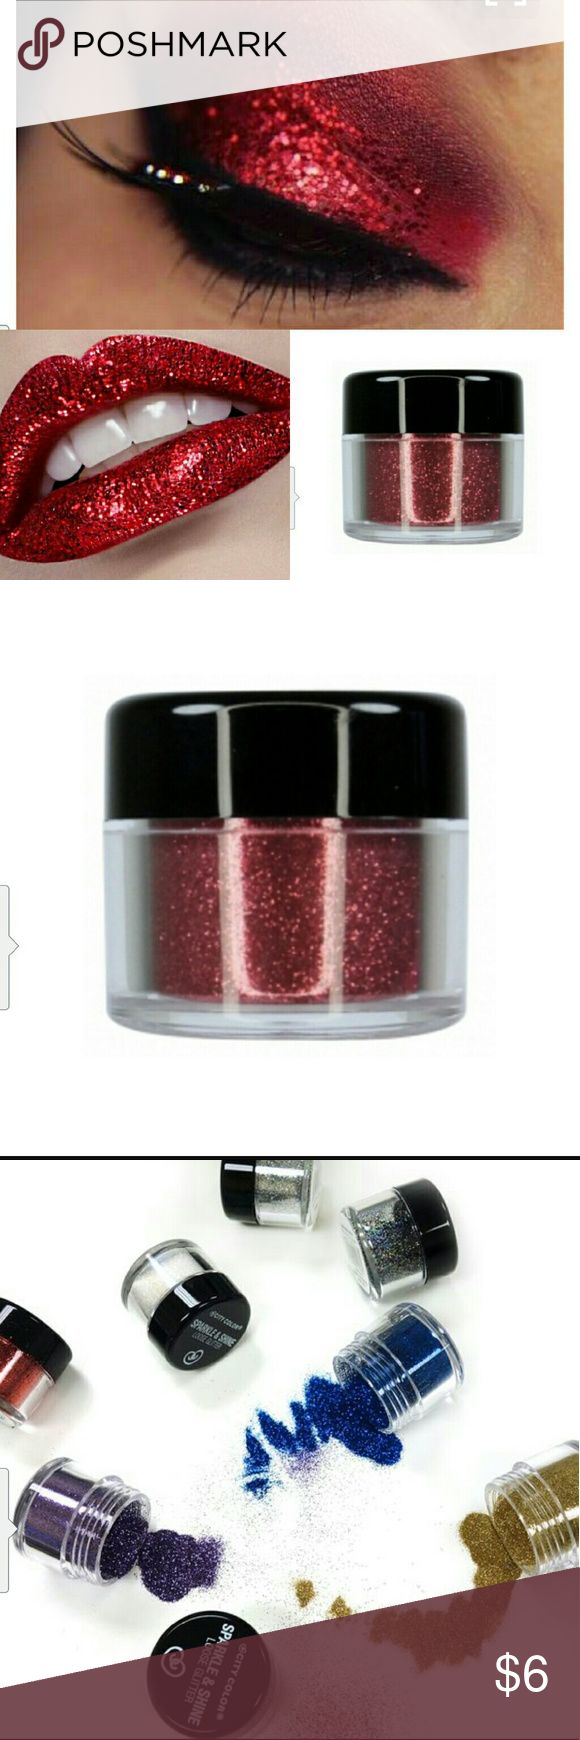 25+ Best Ideas About Loose Glitter Eyeshadow On Pinterest  Light Eyebrows,  Loose Glitter And Makeup Eyeshadow